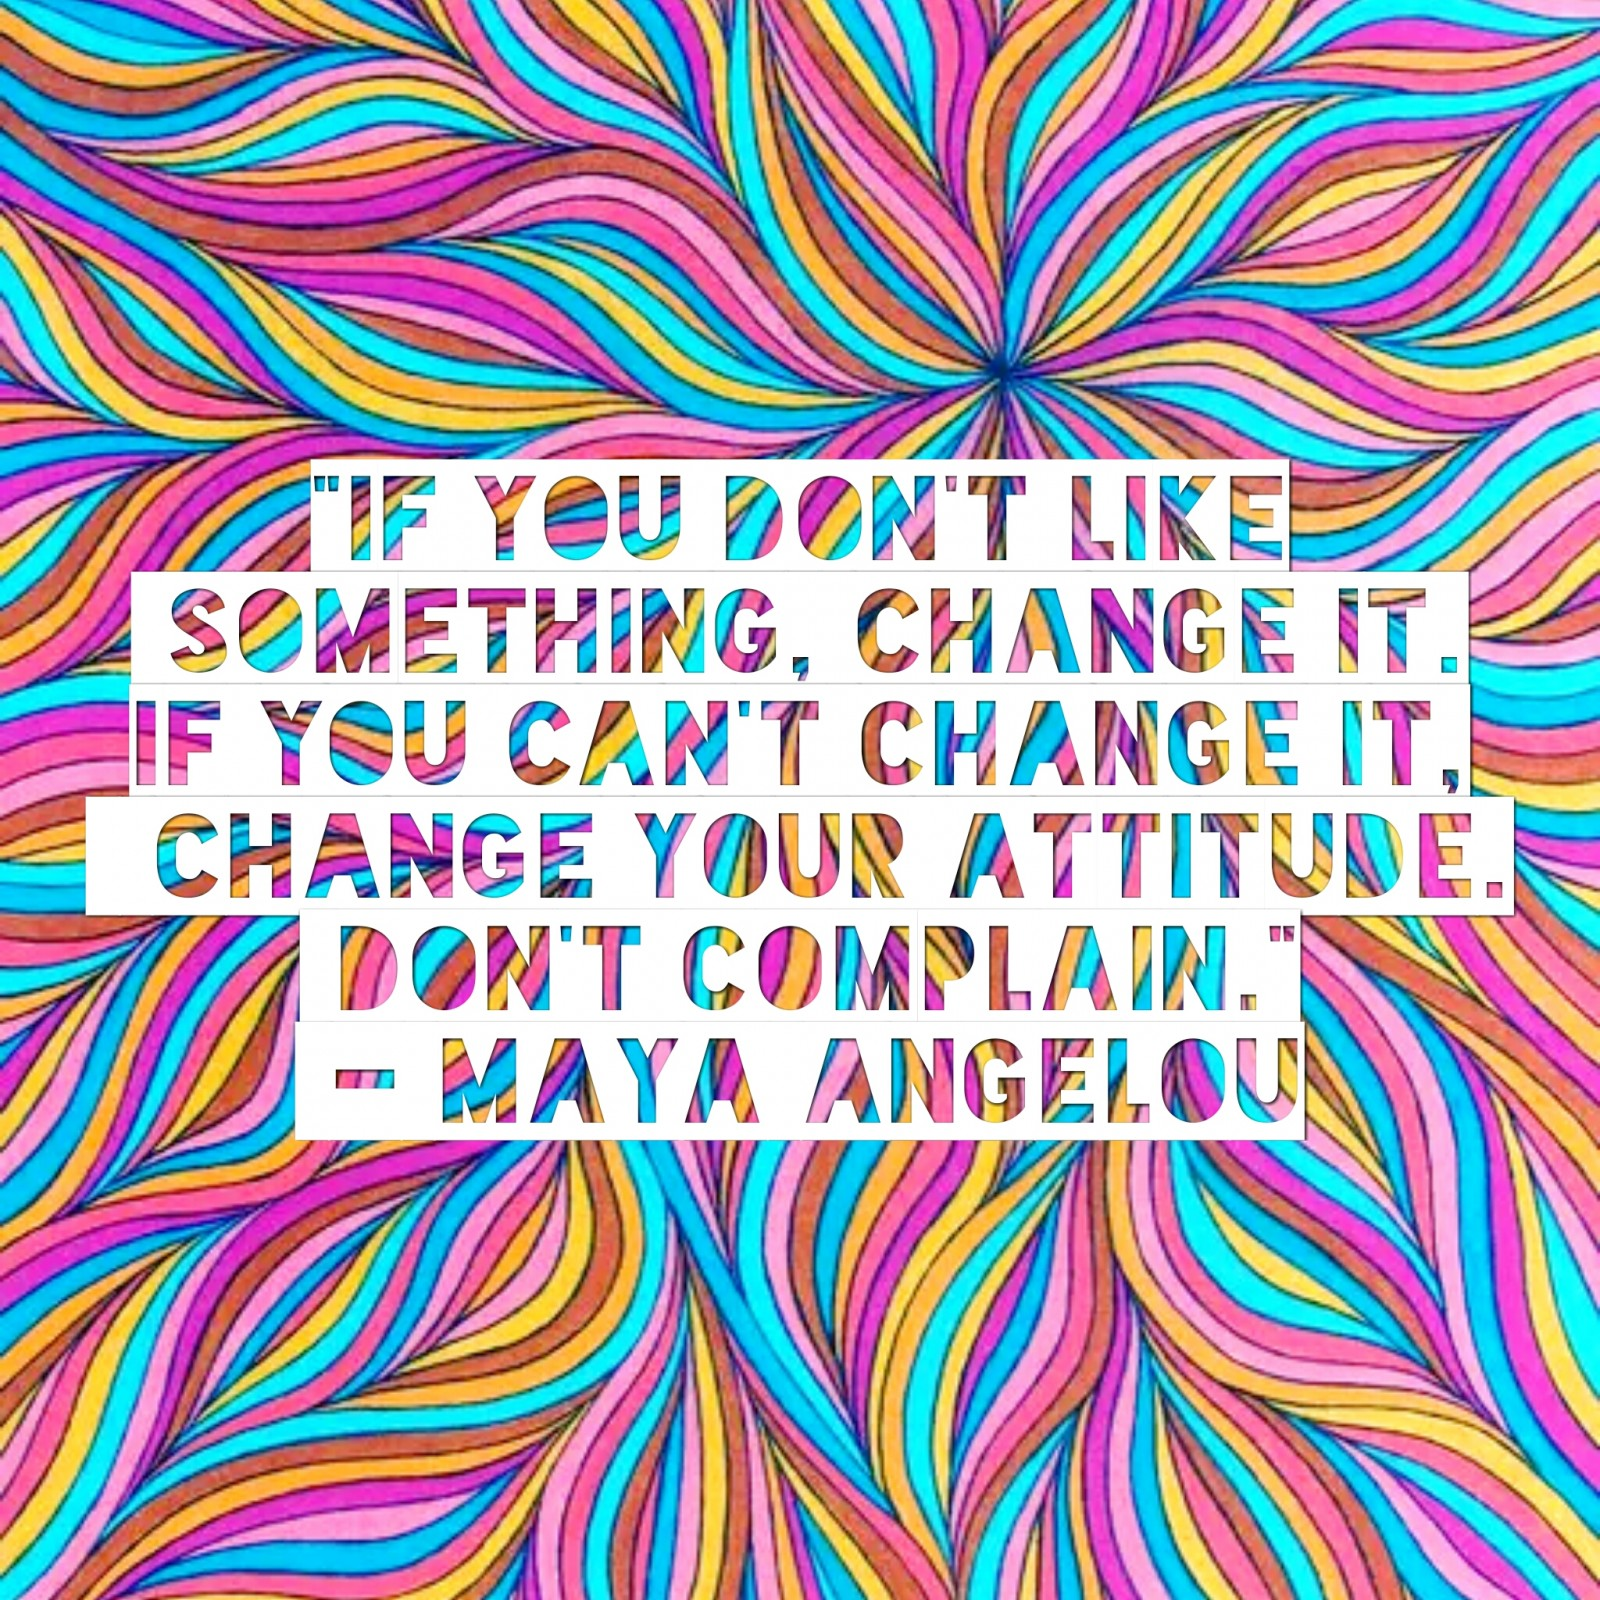 """If you don't like something, change it. If you can't change it, change your attitude. Don't complain."" – Maya Angelou"